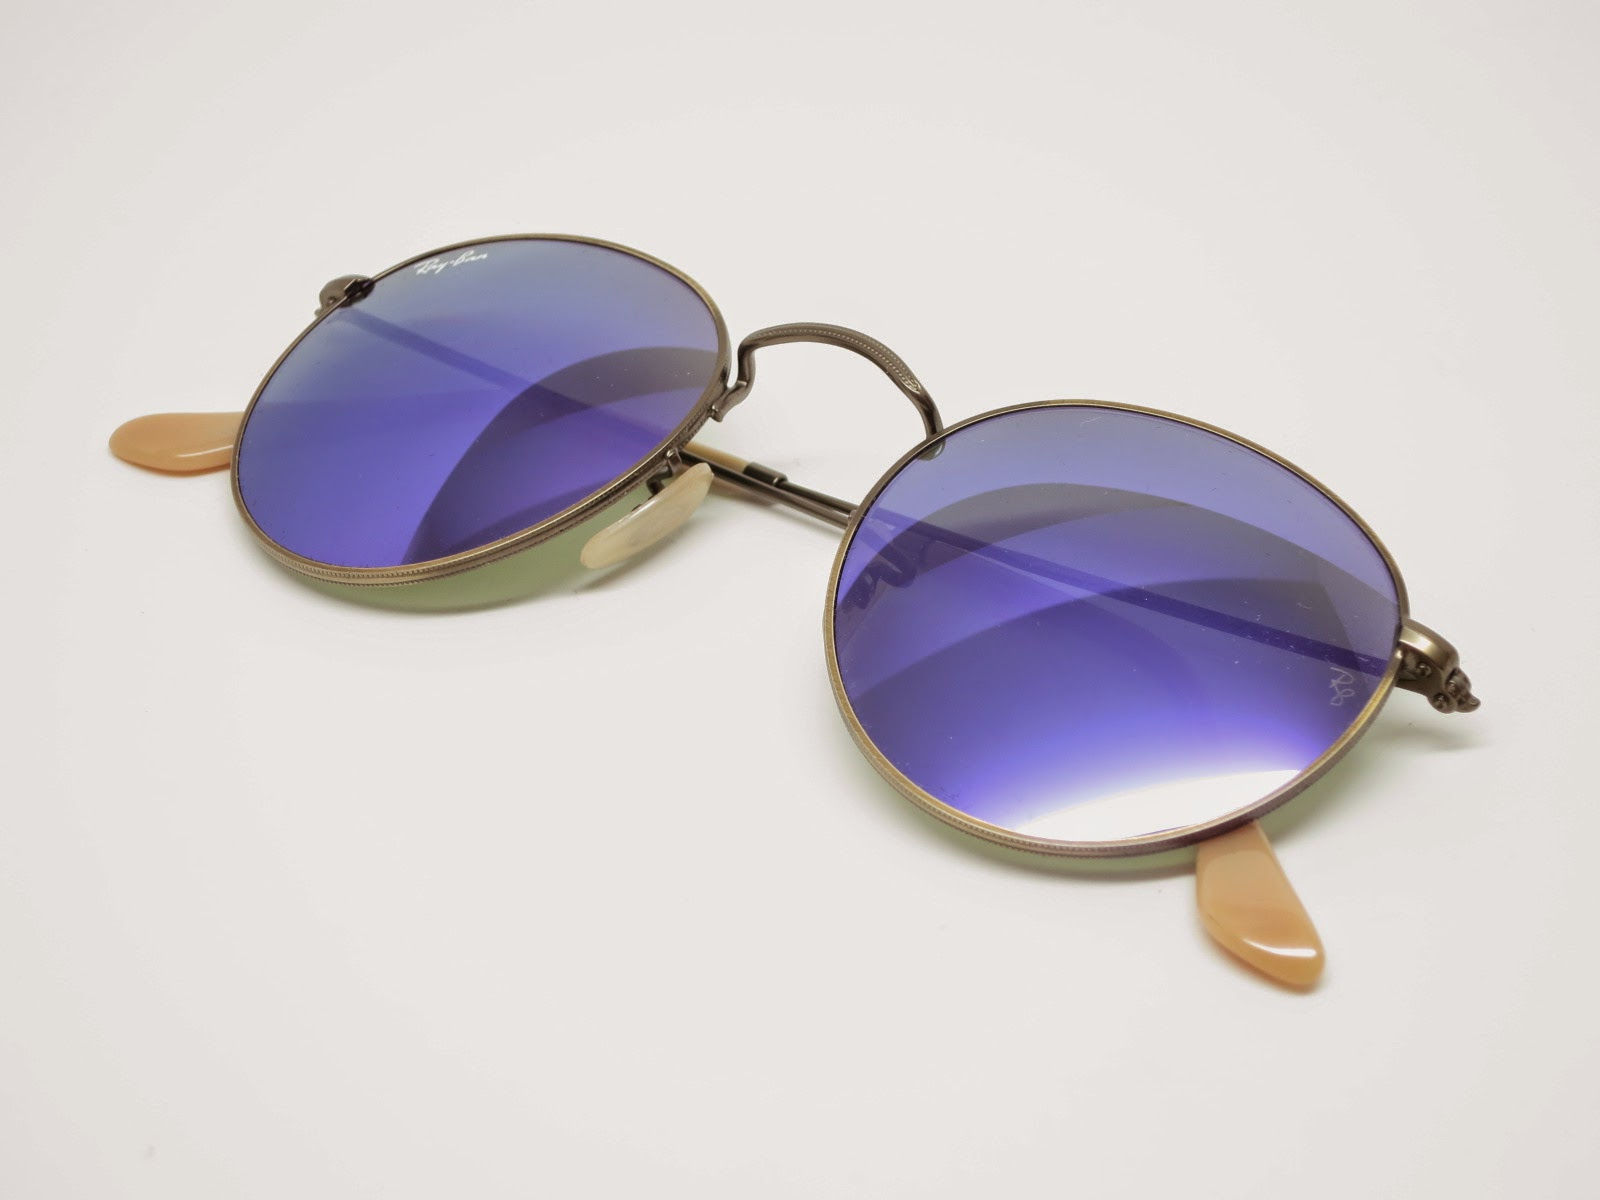 ray ban sunglasses made in china  Ray-Ban RB 3447 Round Metal 167/1M Violet Mirrored Sunglasses